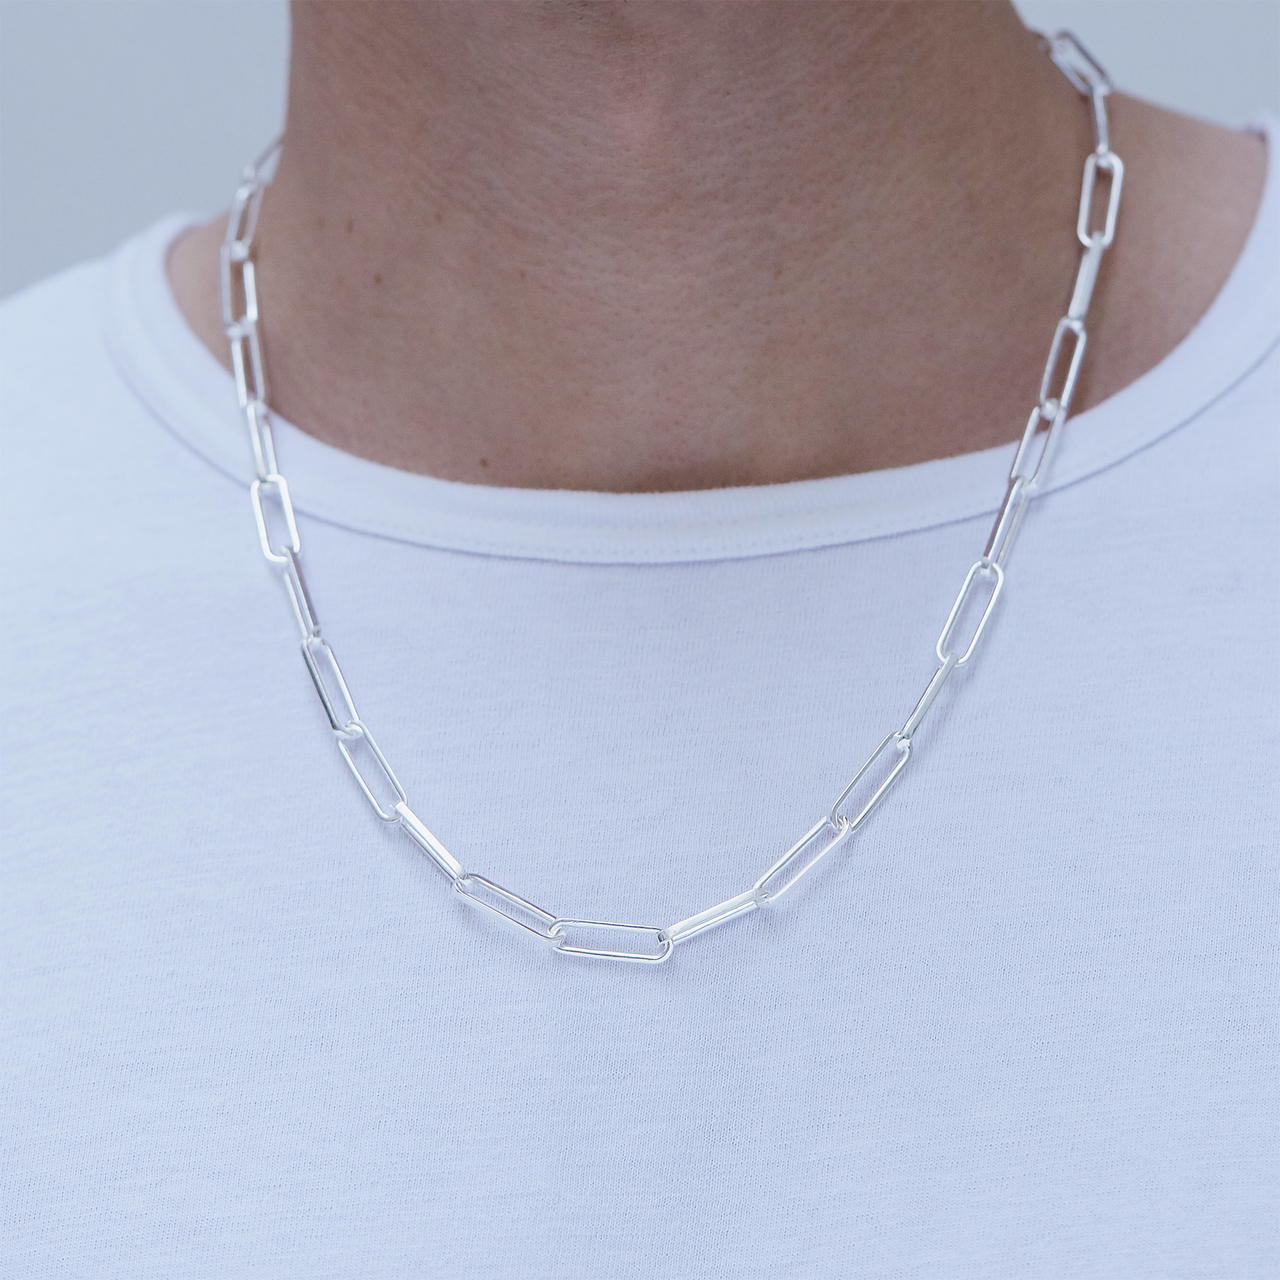 Necklace, long link, silver